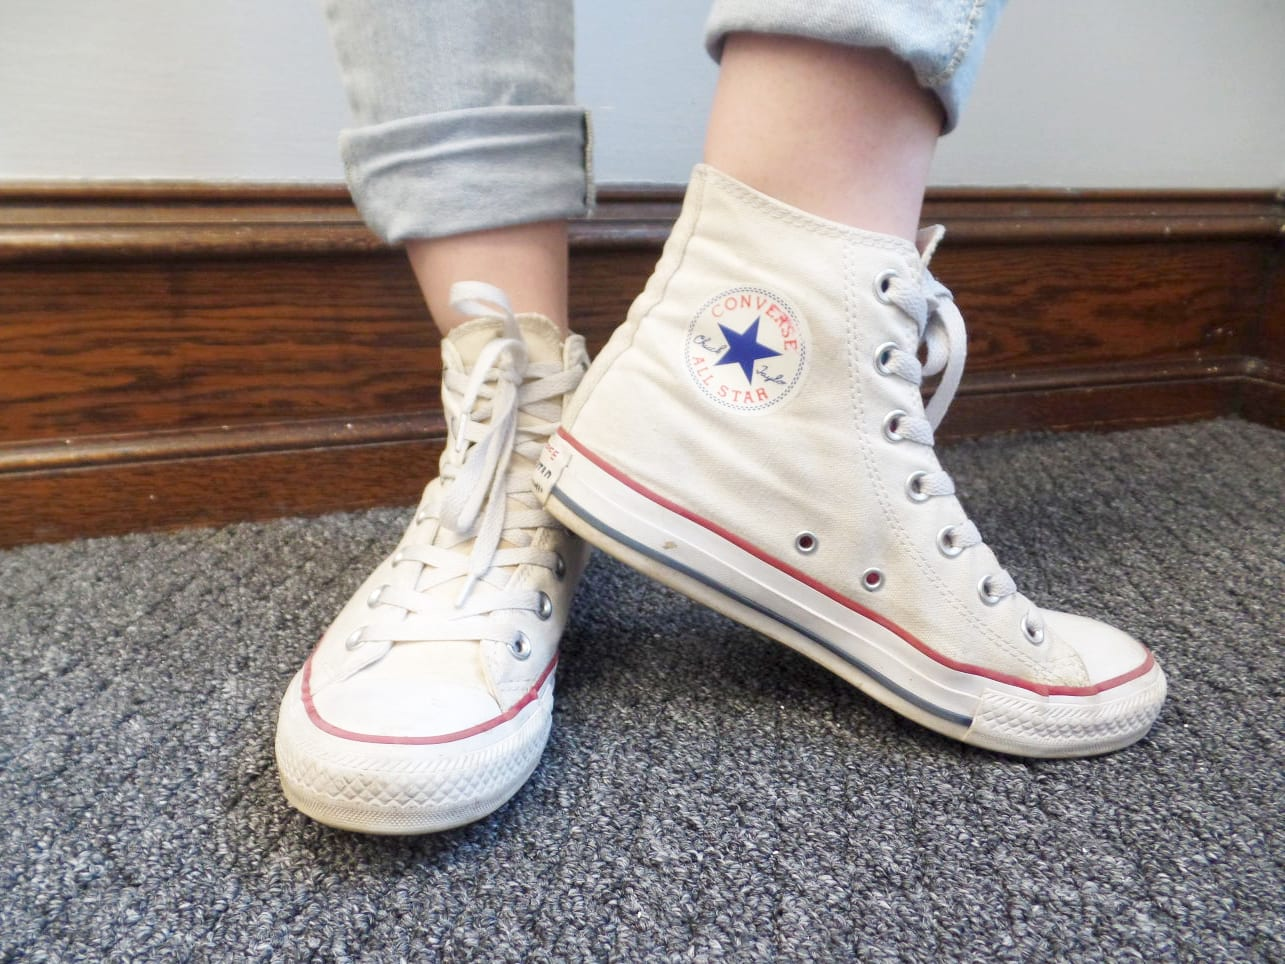 Veronica sports high-top white Converse sneakers with her light-wash jeans cuffed.